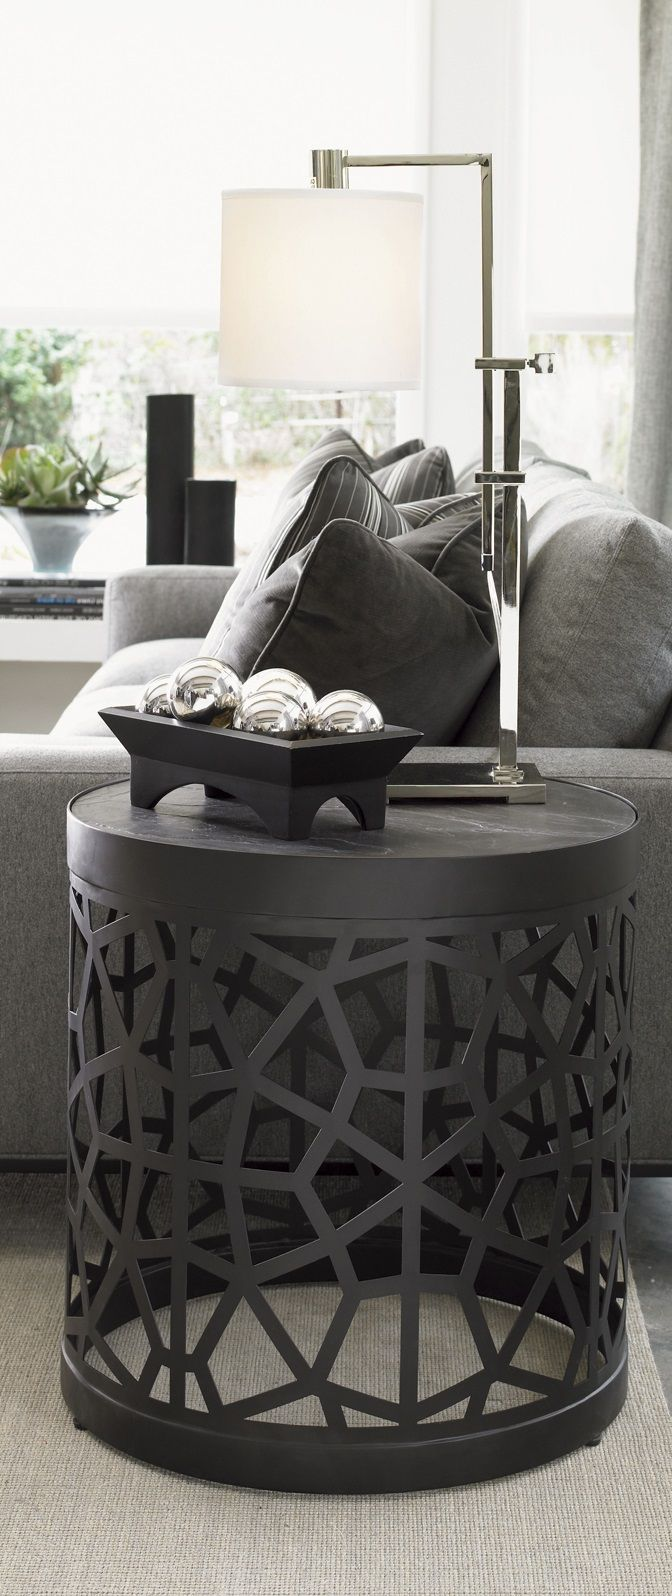 Side tables accent tables end tables interiordesign casegoodsideas